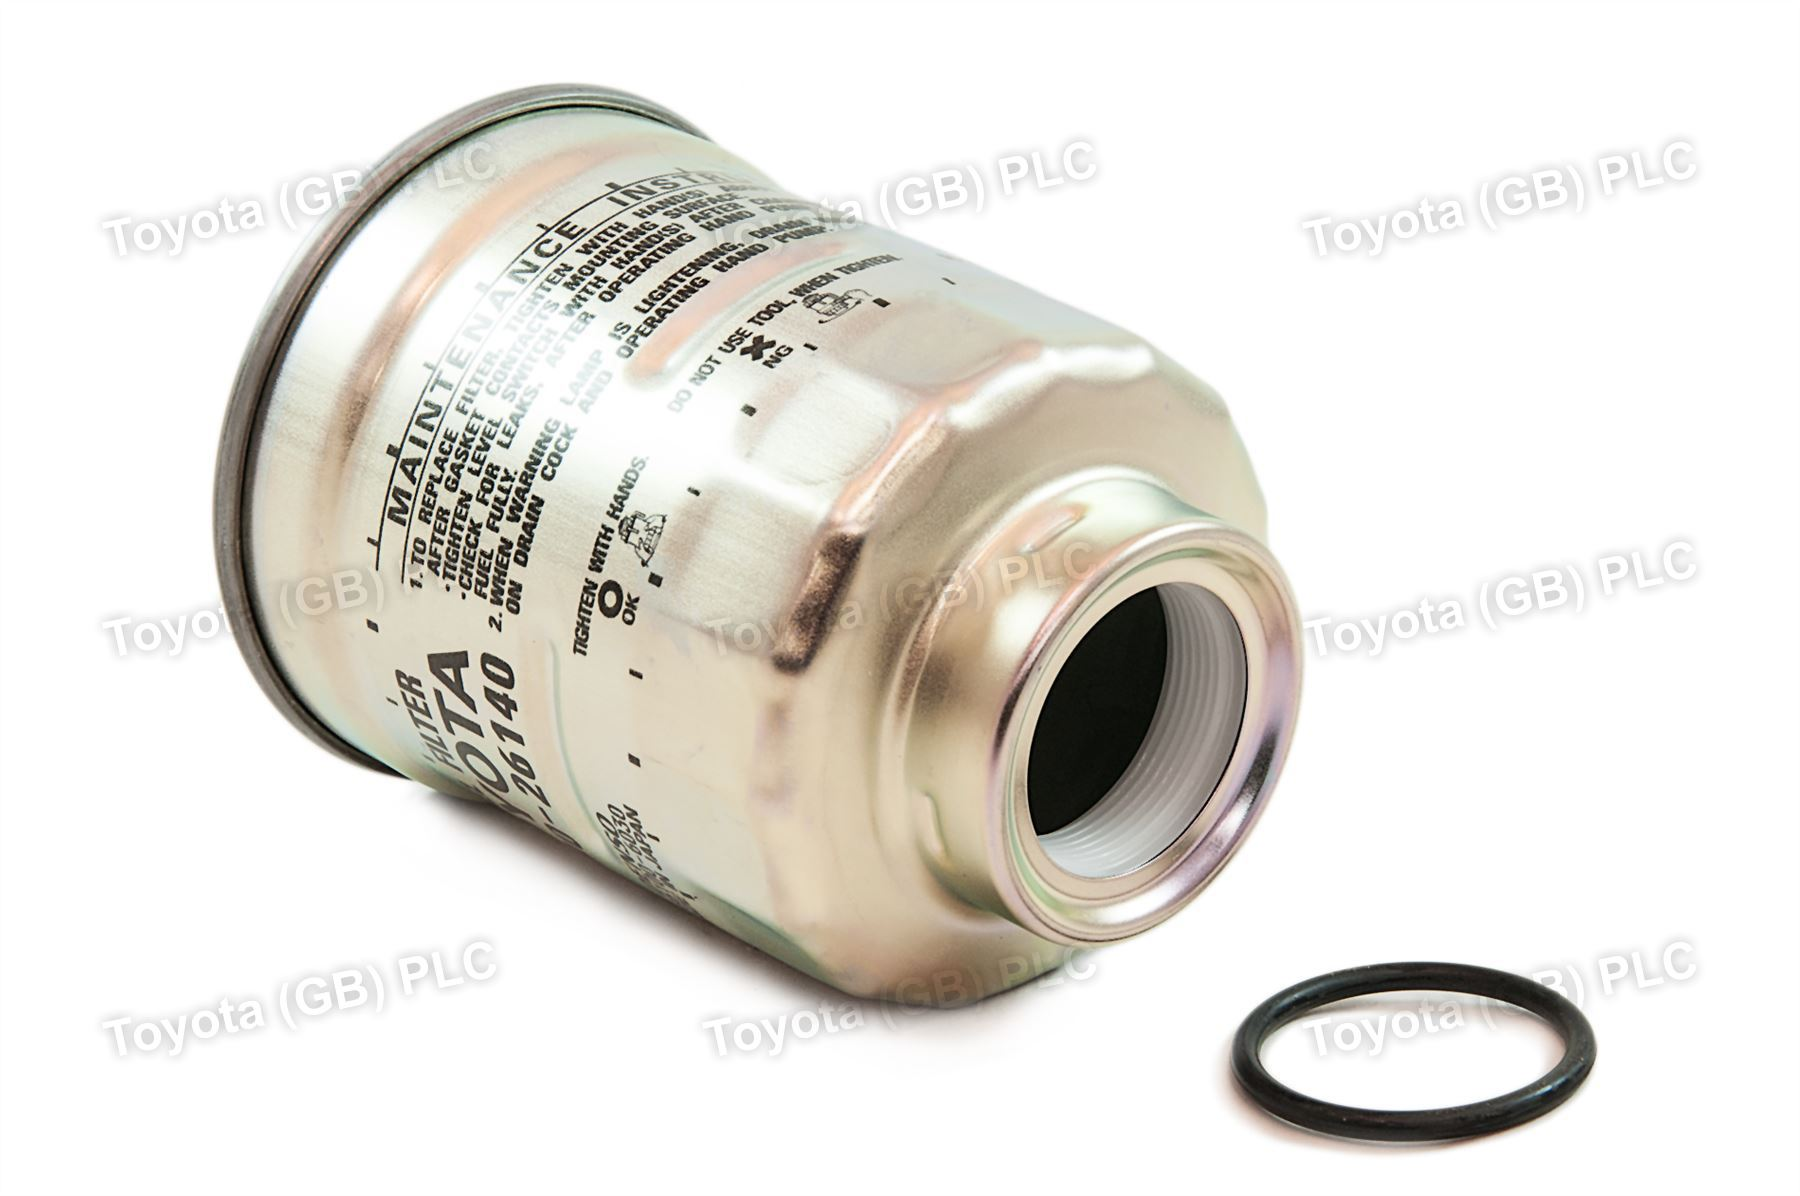 hight resolution of genuine toyota auris corolla car replacement fuel filter 2339026140